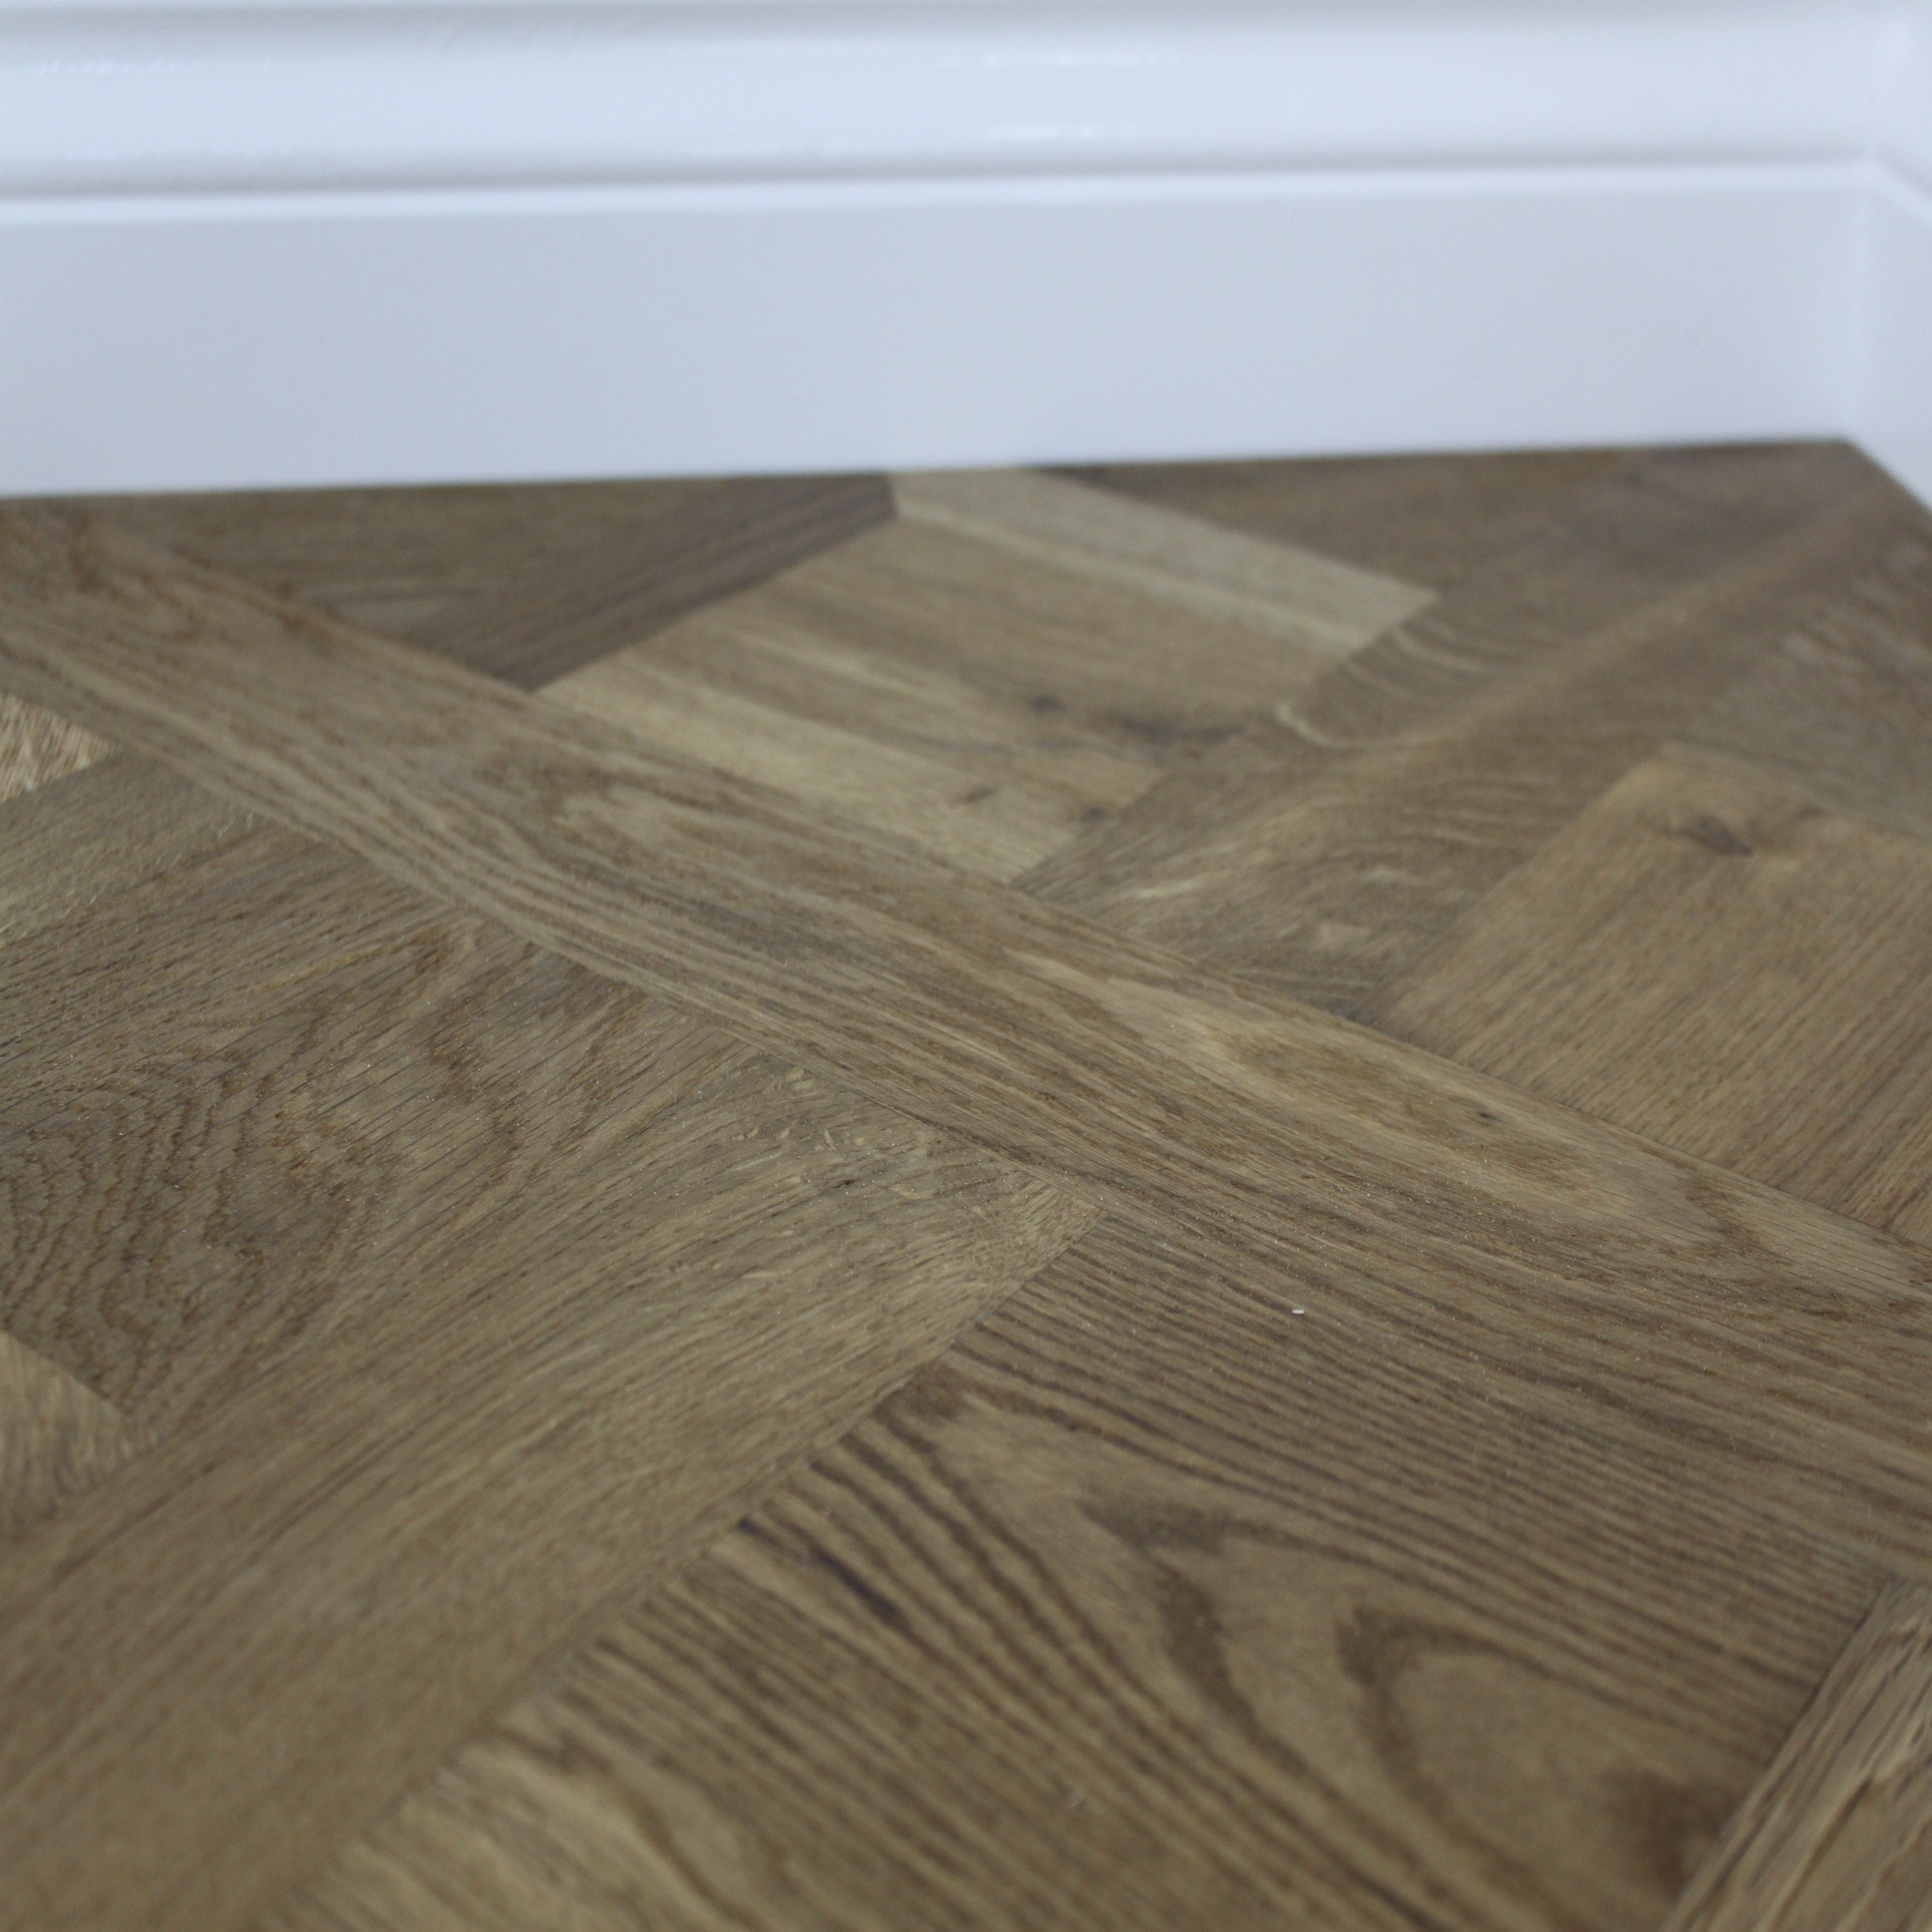 Maxi versailles panels natural oak oiled engineered wood for Instock flooring